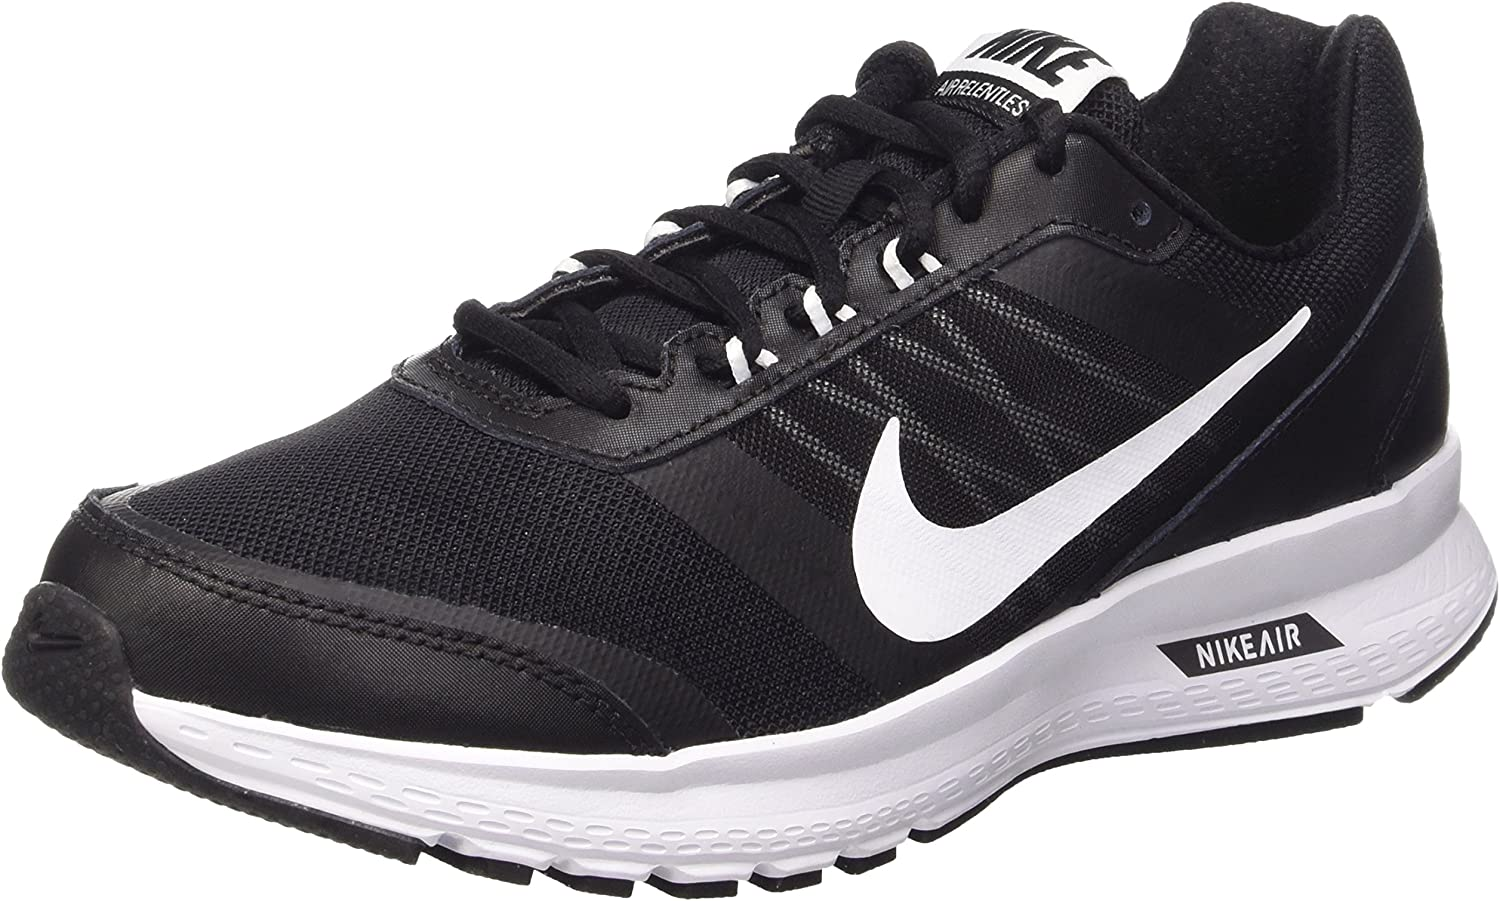 Nike Air Relentless 5 Men s Running Shoes 807092-001 Black White-Dark Grey-Volt 8 M US